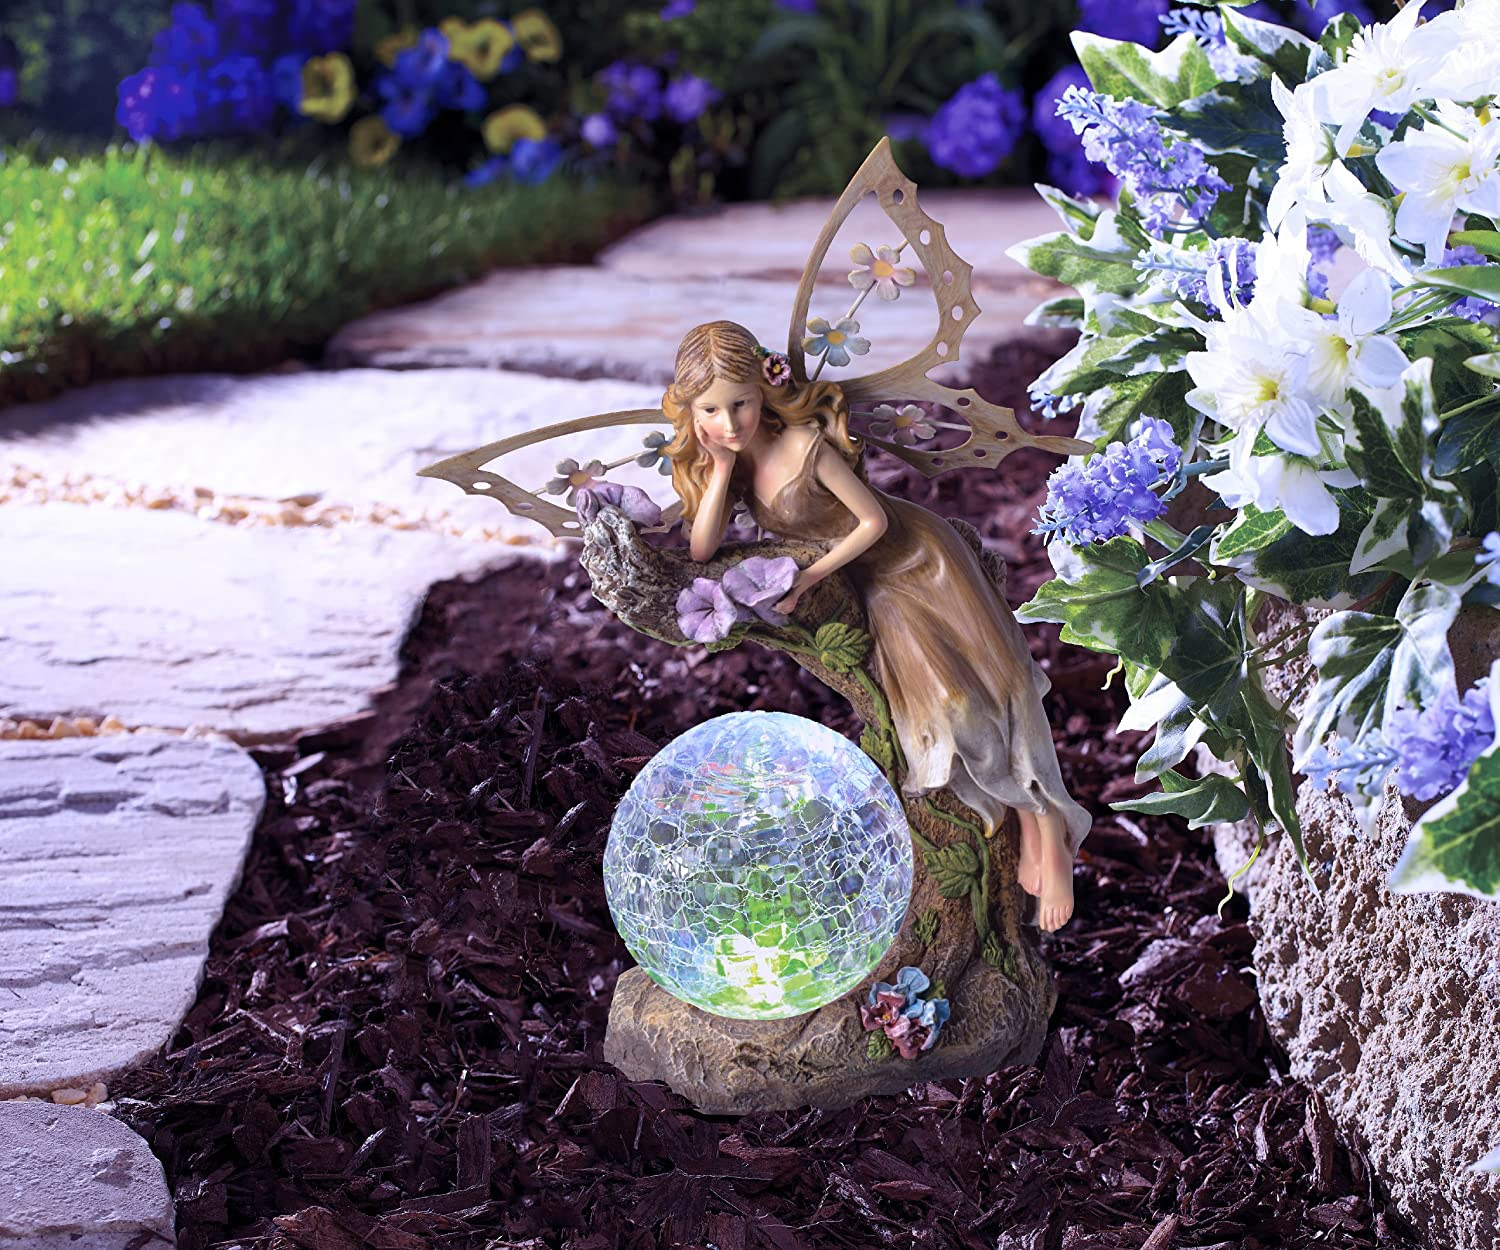 BRING SOLAR POWERED GARDEN FAIRY GLOWING GLOBES INTO YOUR GARDEN